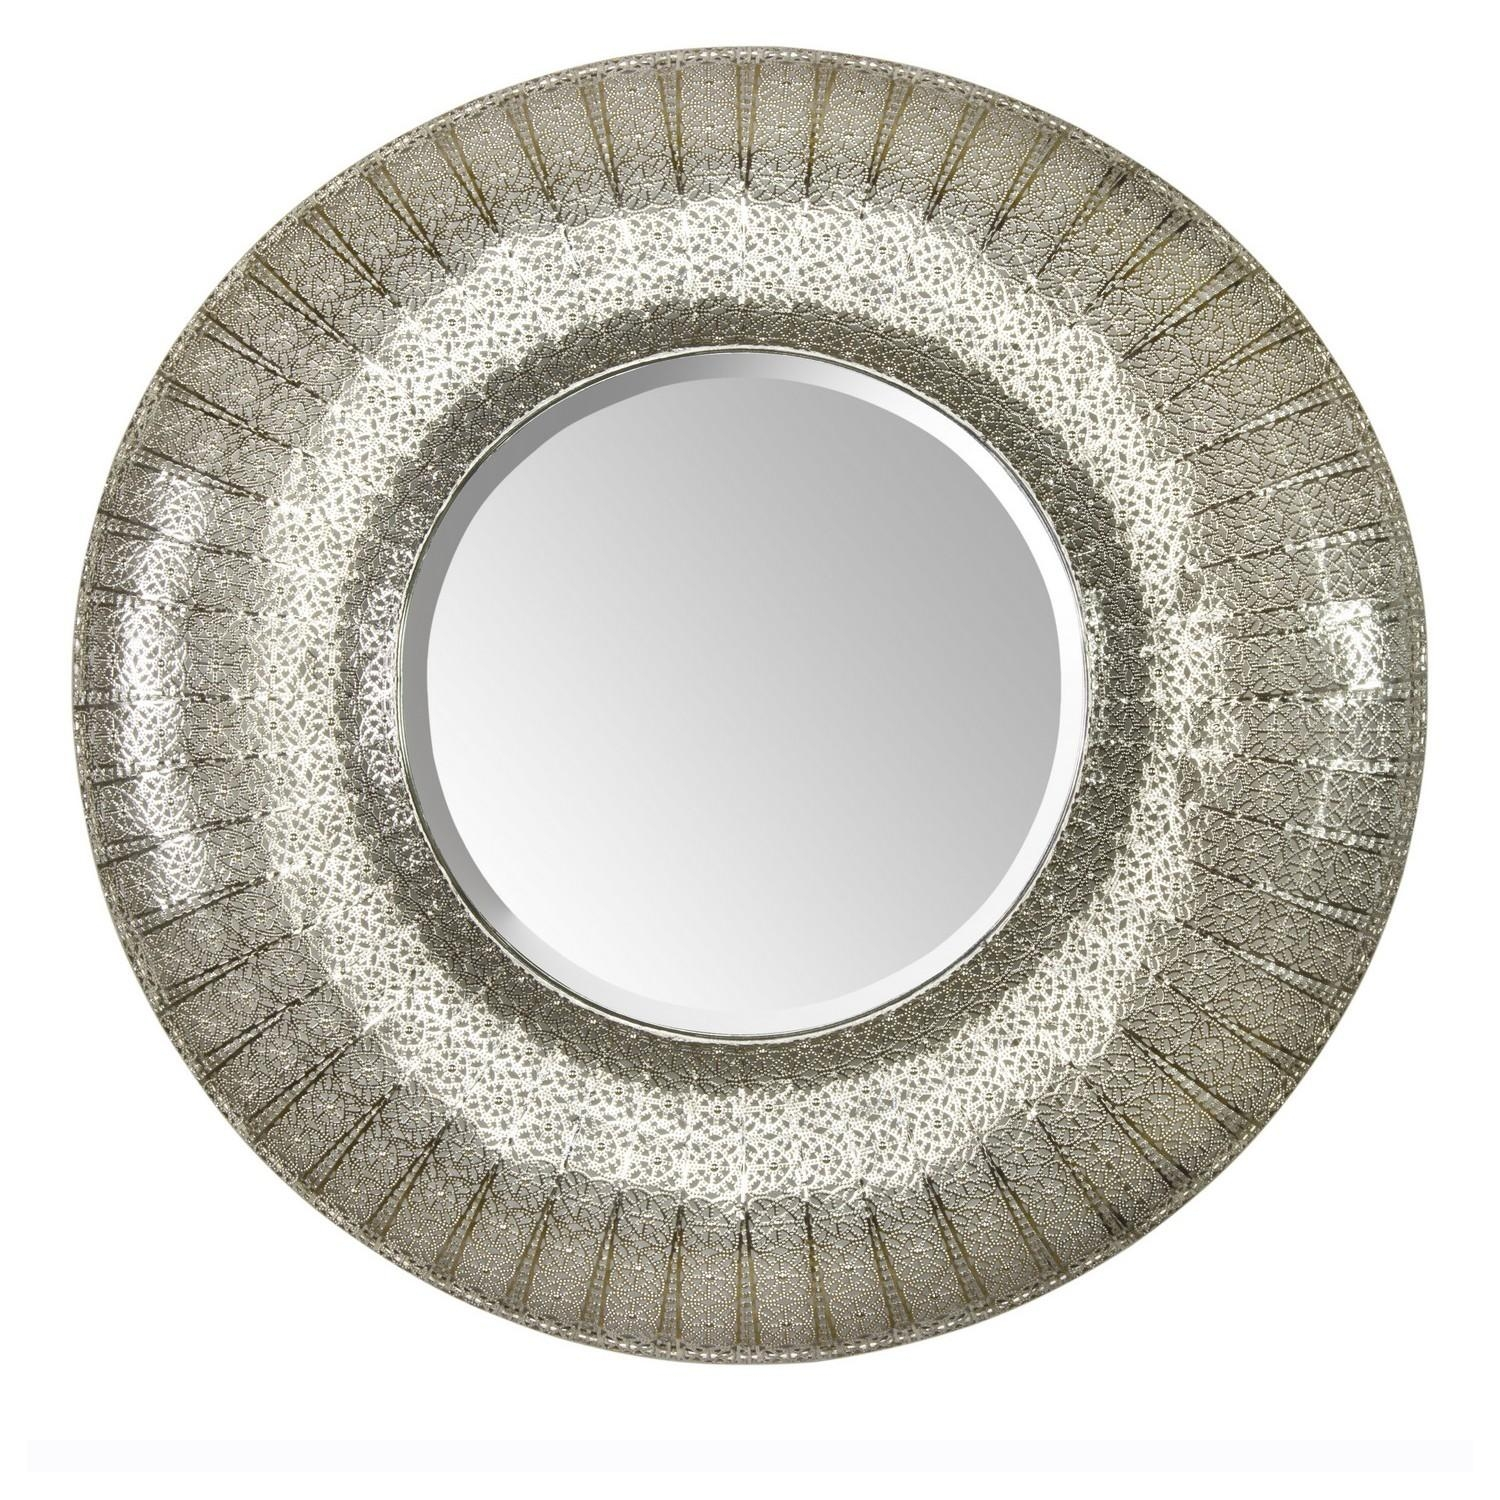 Large Circular Wall Mirrors 89 Beautiful Decoration Also Modern Inside Large Round Silver Mirror (Image 6 of 20)